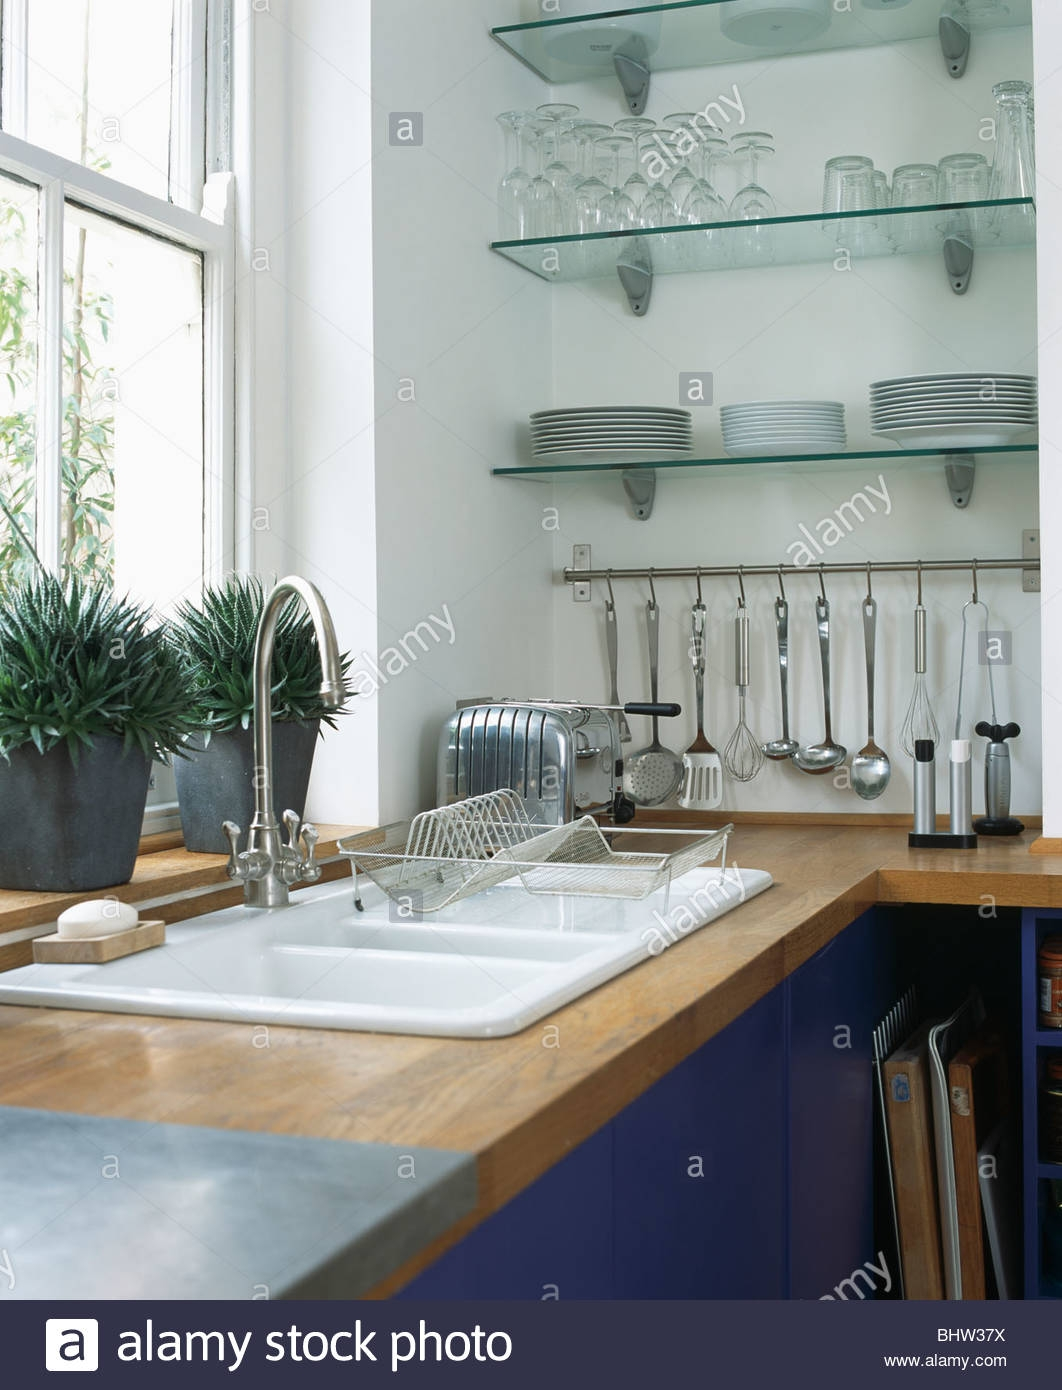 Popular Photo of Glass Kitchen Shelves